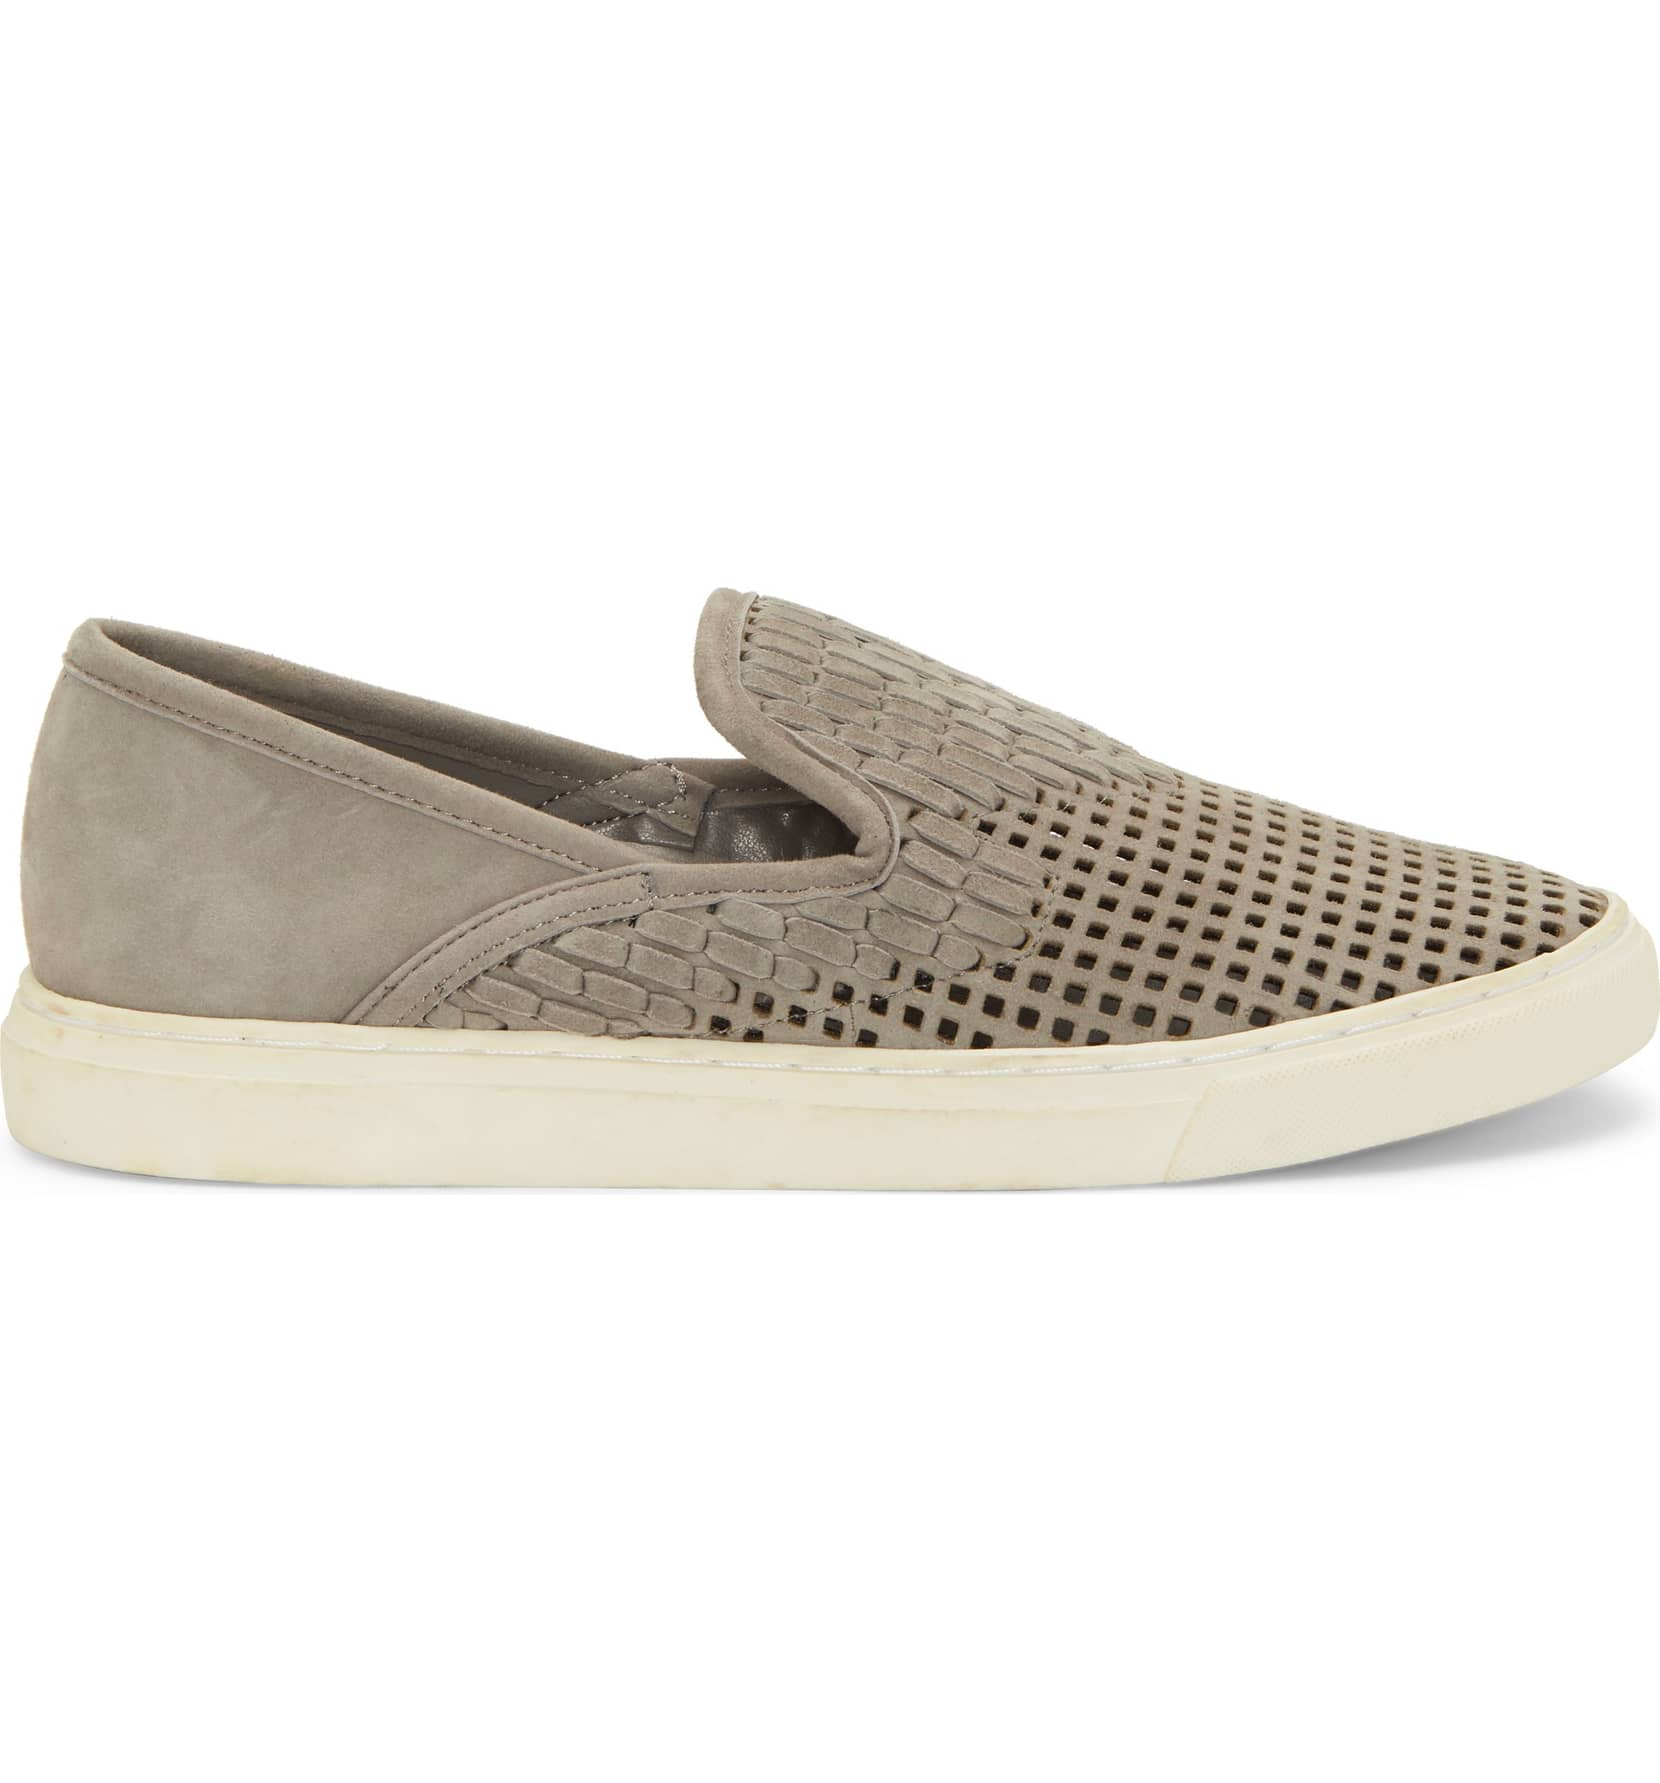 Vince-Camuto-Bristie-Storm-Grey-Leather-Woven-White-Sole-Slip-On-Sneakers thumbnail 13